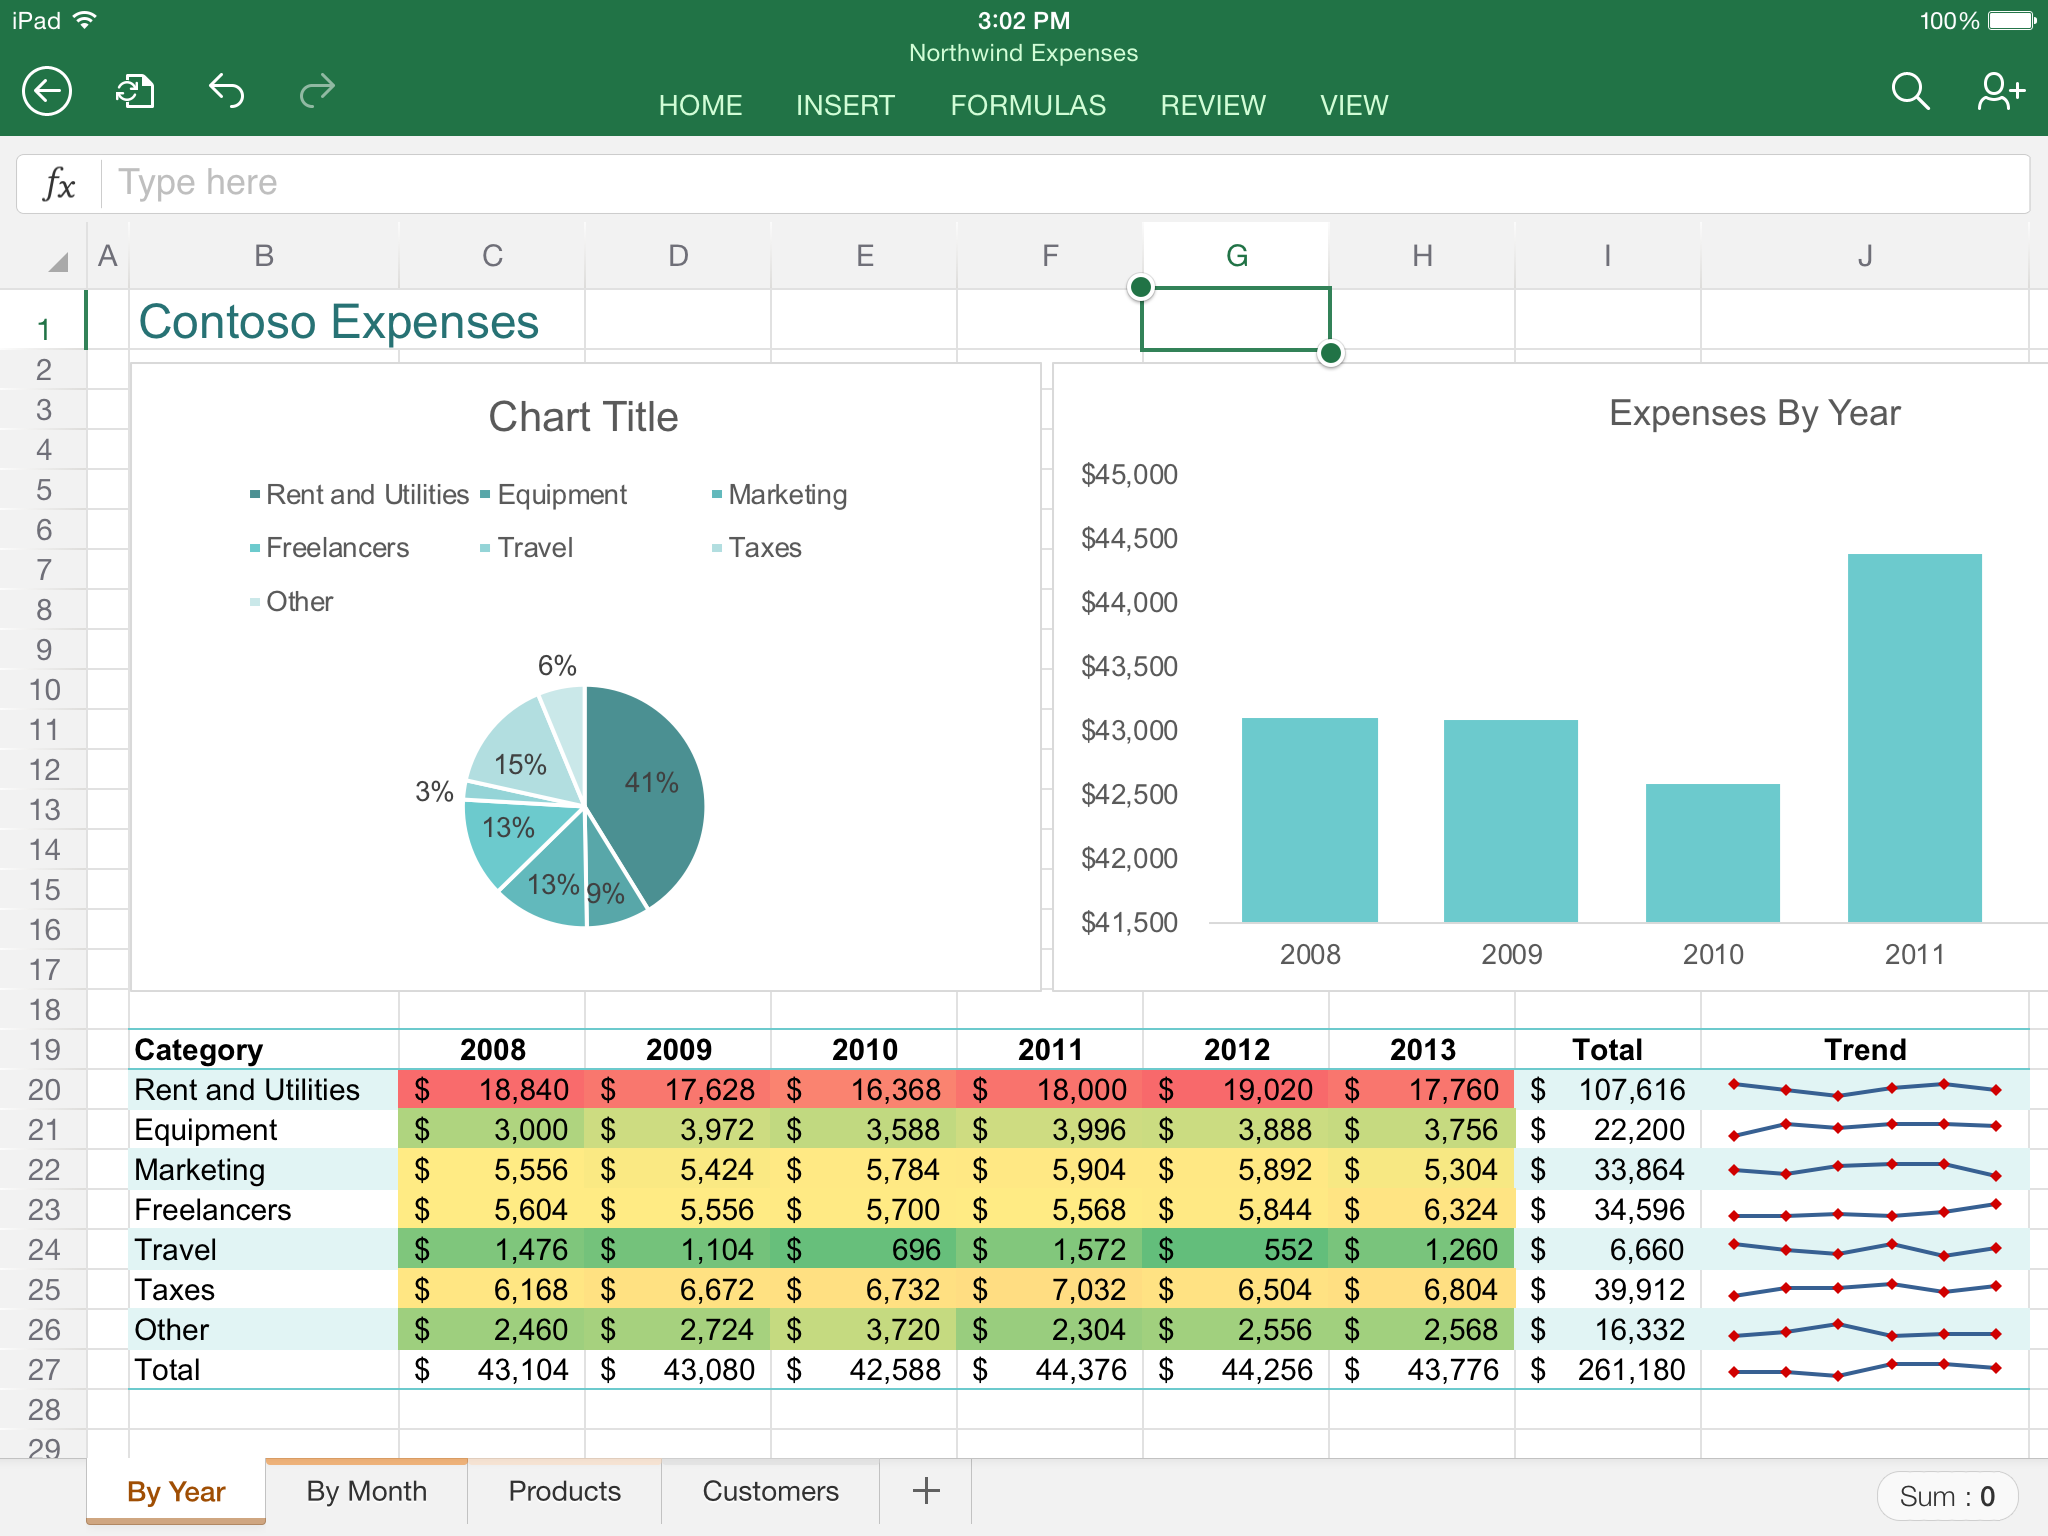 Ediblewildsus  Terrific App Highlight Excel  Mobile Digital Now With Hot Excel In Action With Astounding Excel  Count Also Paste Pdf Into Excel In Addition Excel Project Dashboard And Count The Number Of Rows In Excel As Well As Free Excel Timesheet Template Additionally Chi Square Test On Excel From Youstonybrookedu With Ediblewildsus  Hot App Highlight Excel  Mobile Digital Now With Astounding Excel In Action And Terrific Excel  Count Also Paste Pdf Into Excel In Addition Excel Project Dashboard From Youstonybrookedu